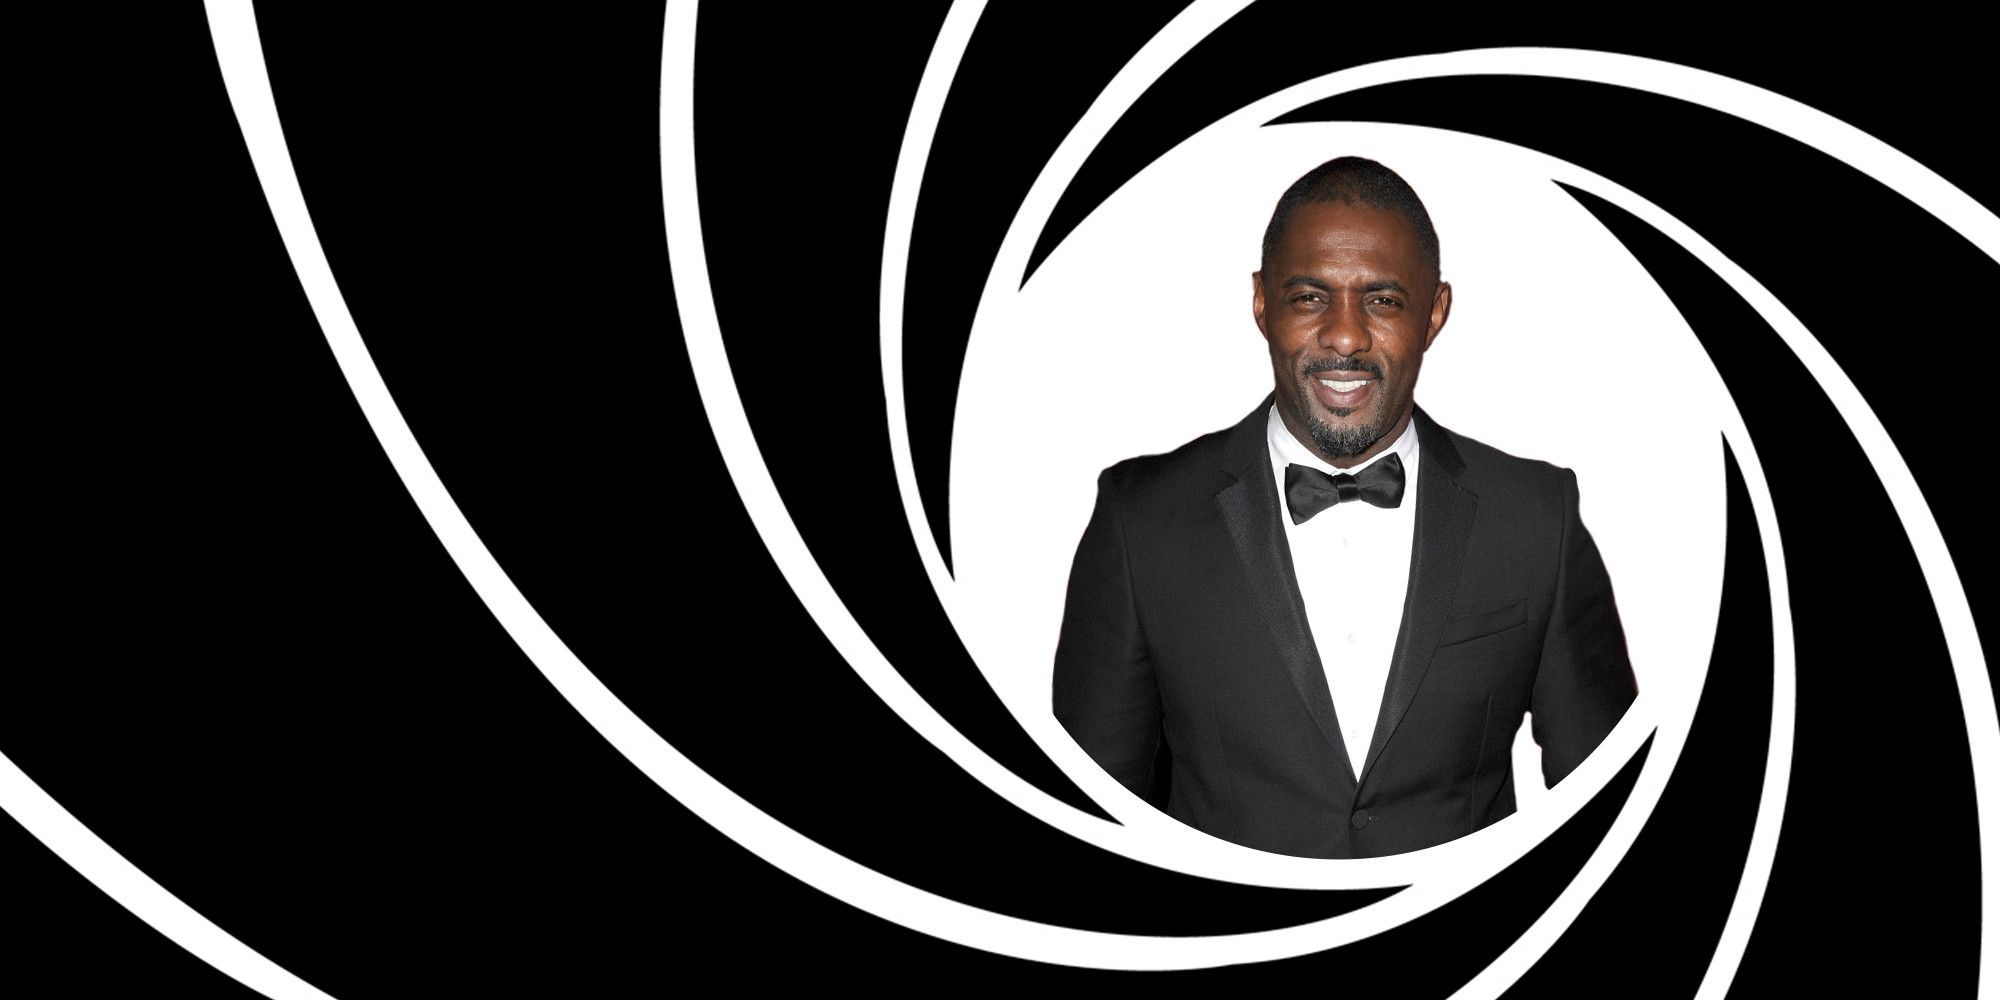 Every argument against idris elba playing james bond is bullshit